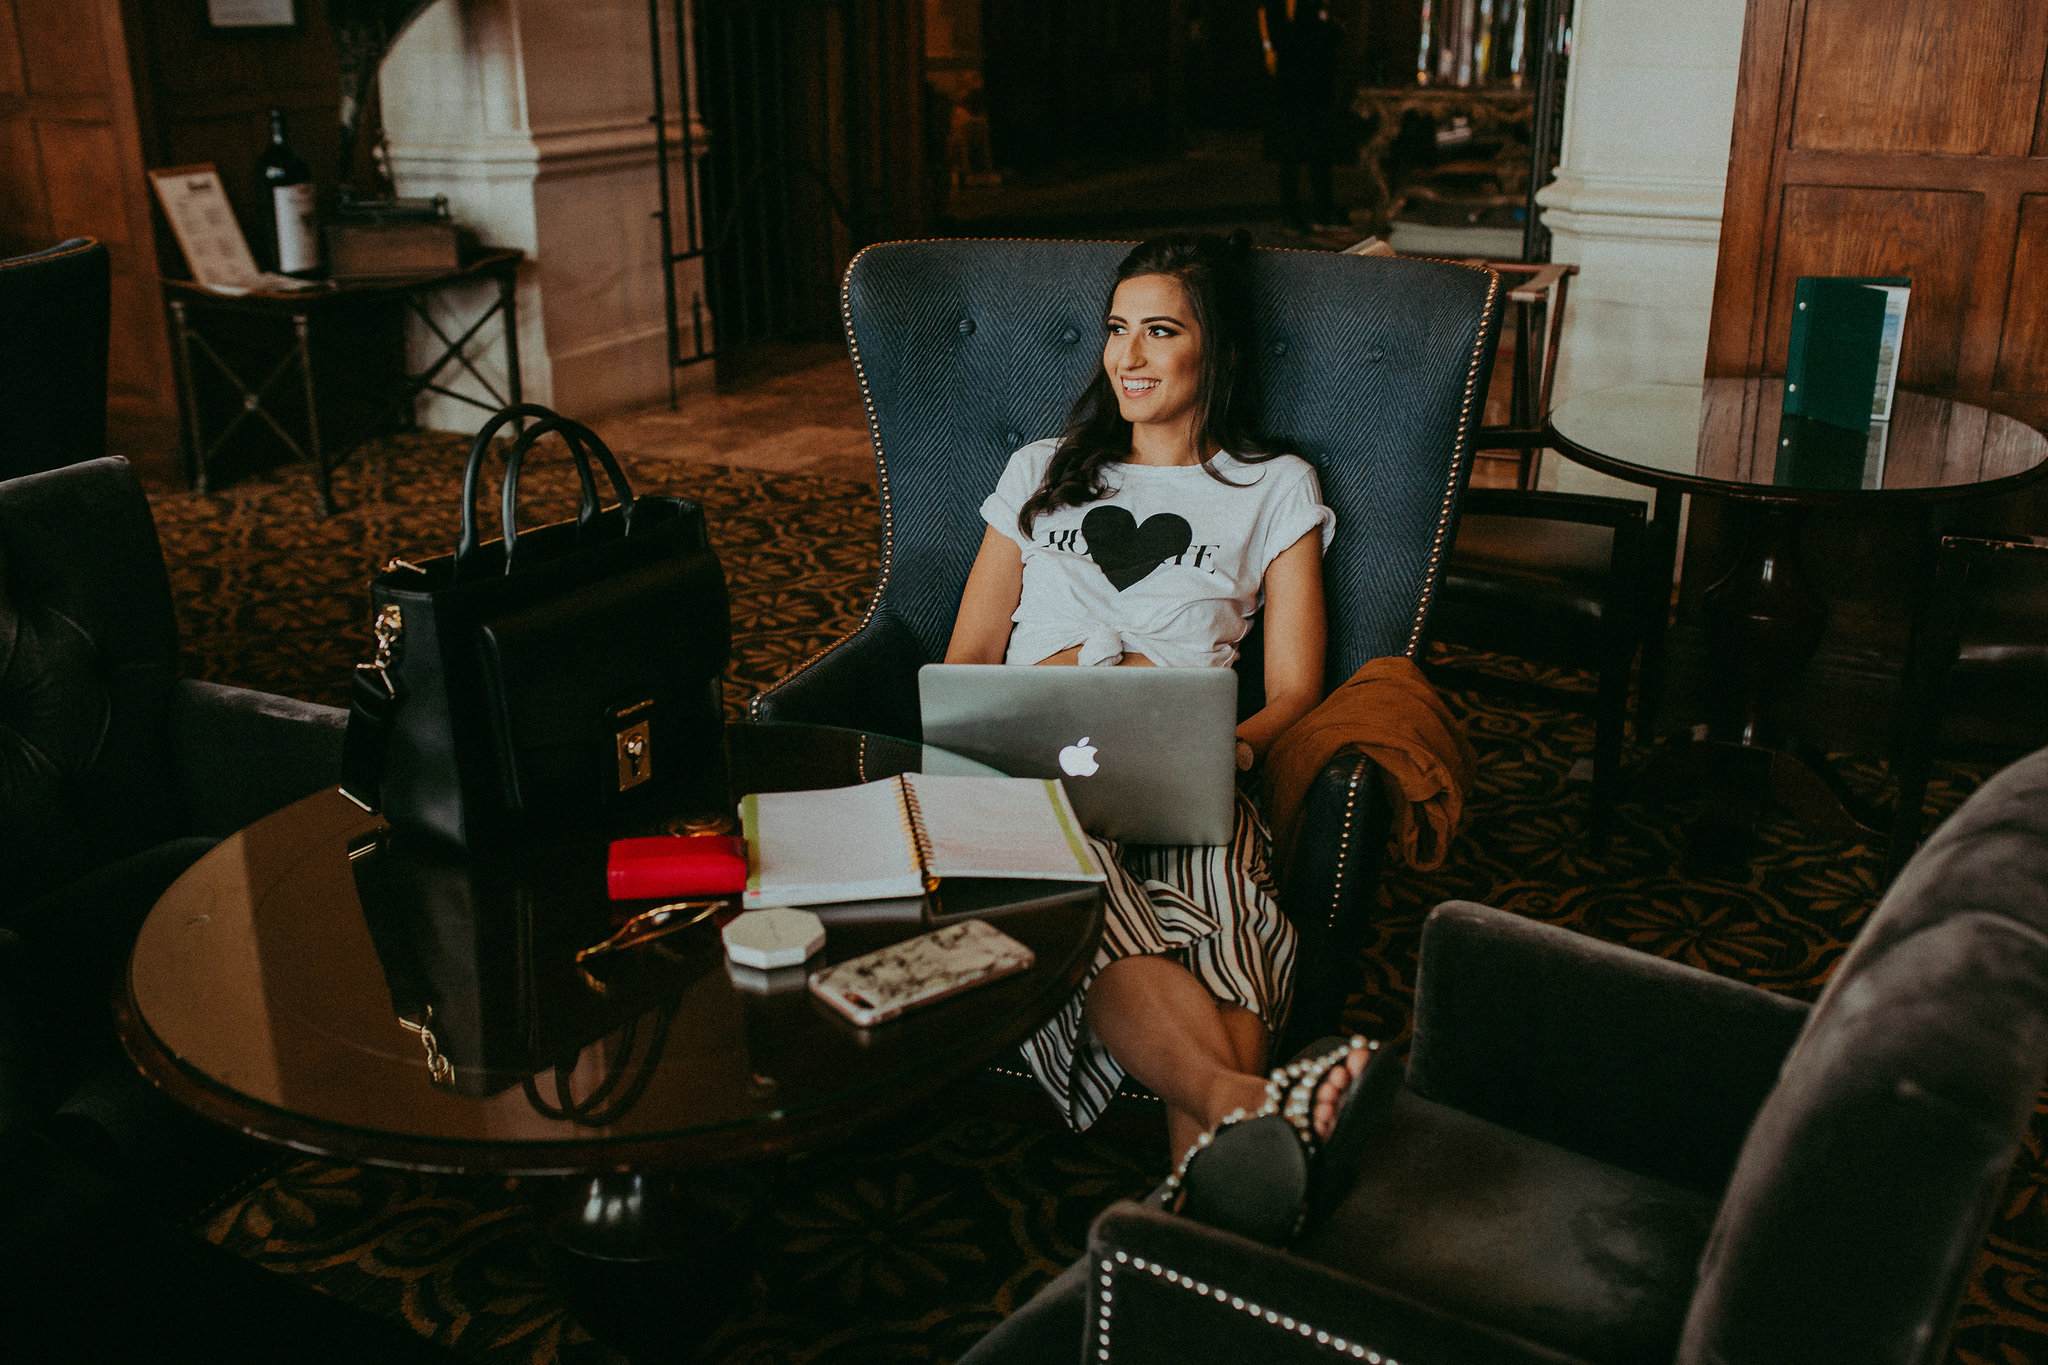 Location:  Fairmont Hotel Macdonald ( http://www.fairmont.com/macdonald-edmonton/ )     Photography:  Terolenn Mykitiuk  ( http://www.terolenn.com/photography )     Hair and Makeup:  Reema Aulakh (instagram:  @reemakestudio )